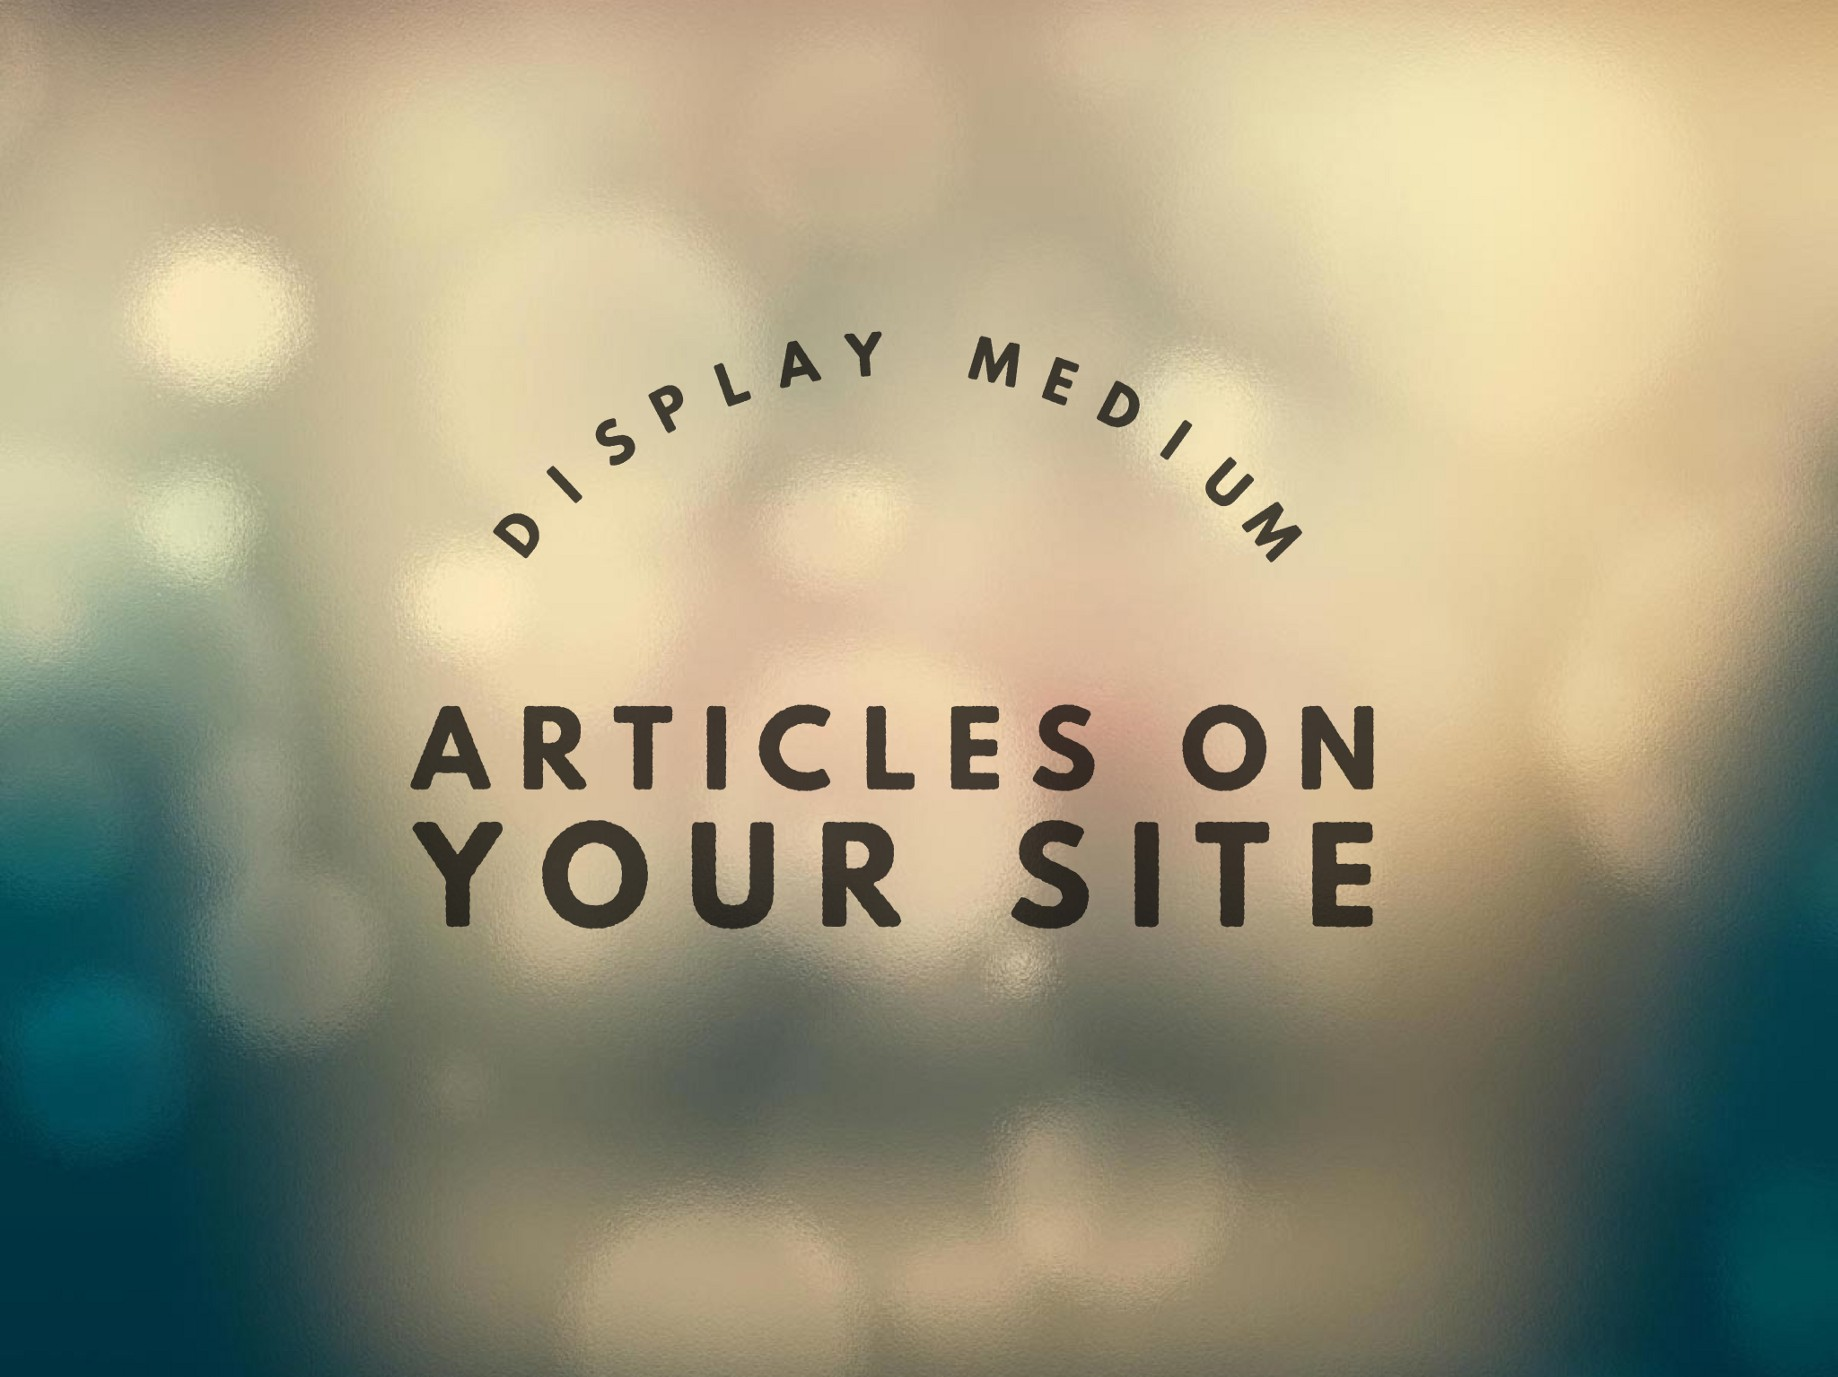 Display Medium articles on your site  - Jason Matthew - Medium